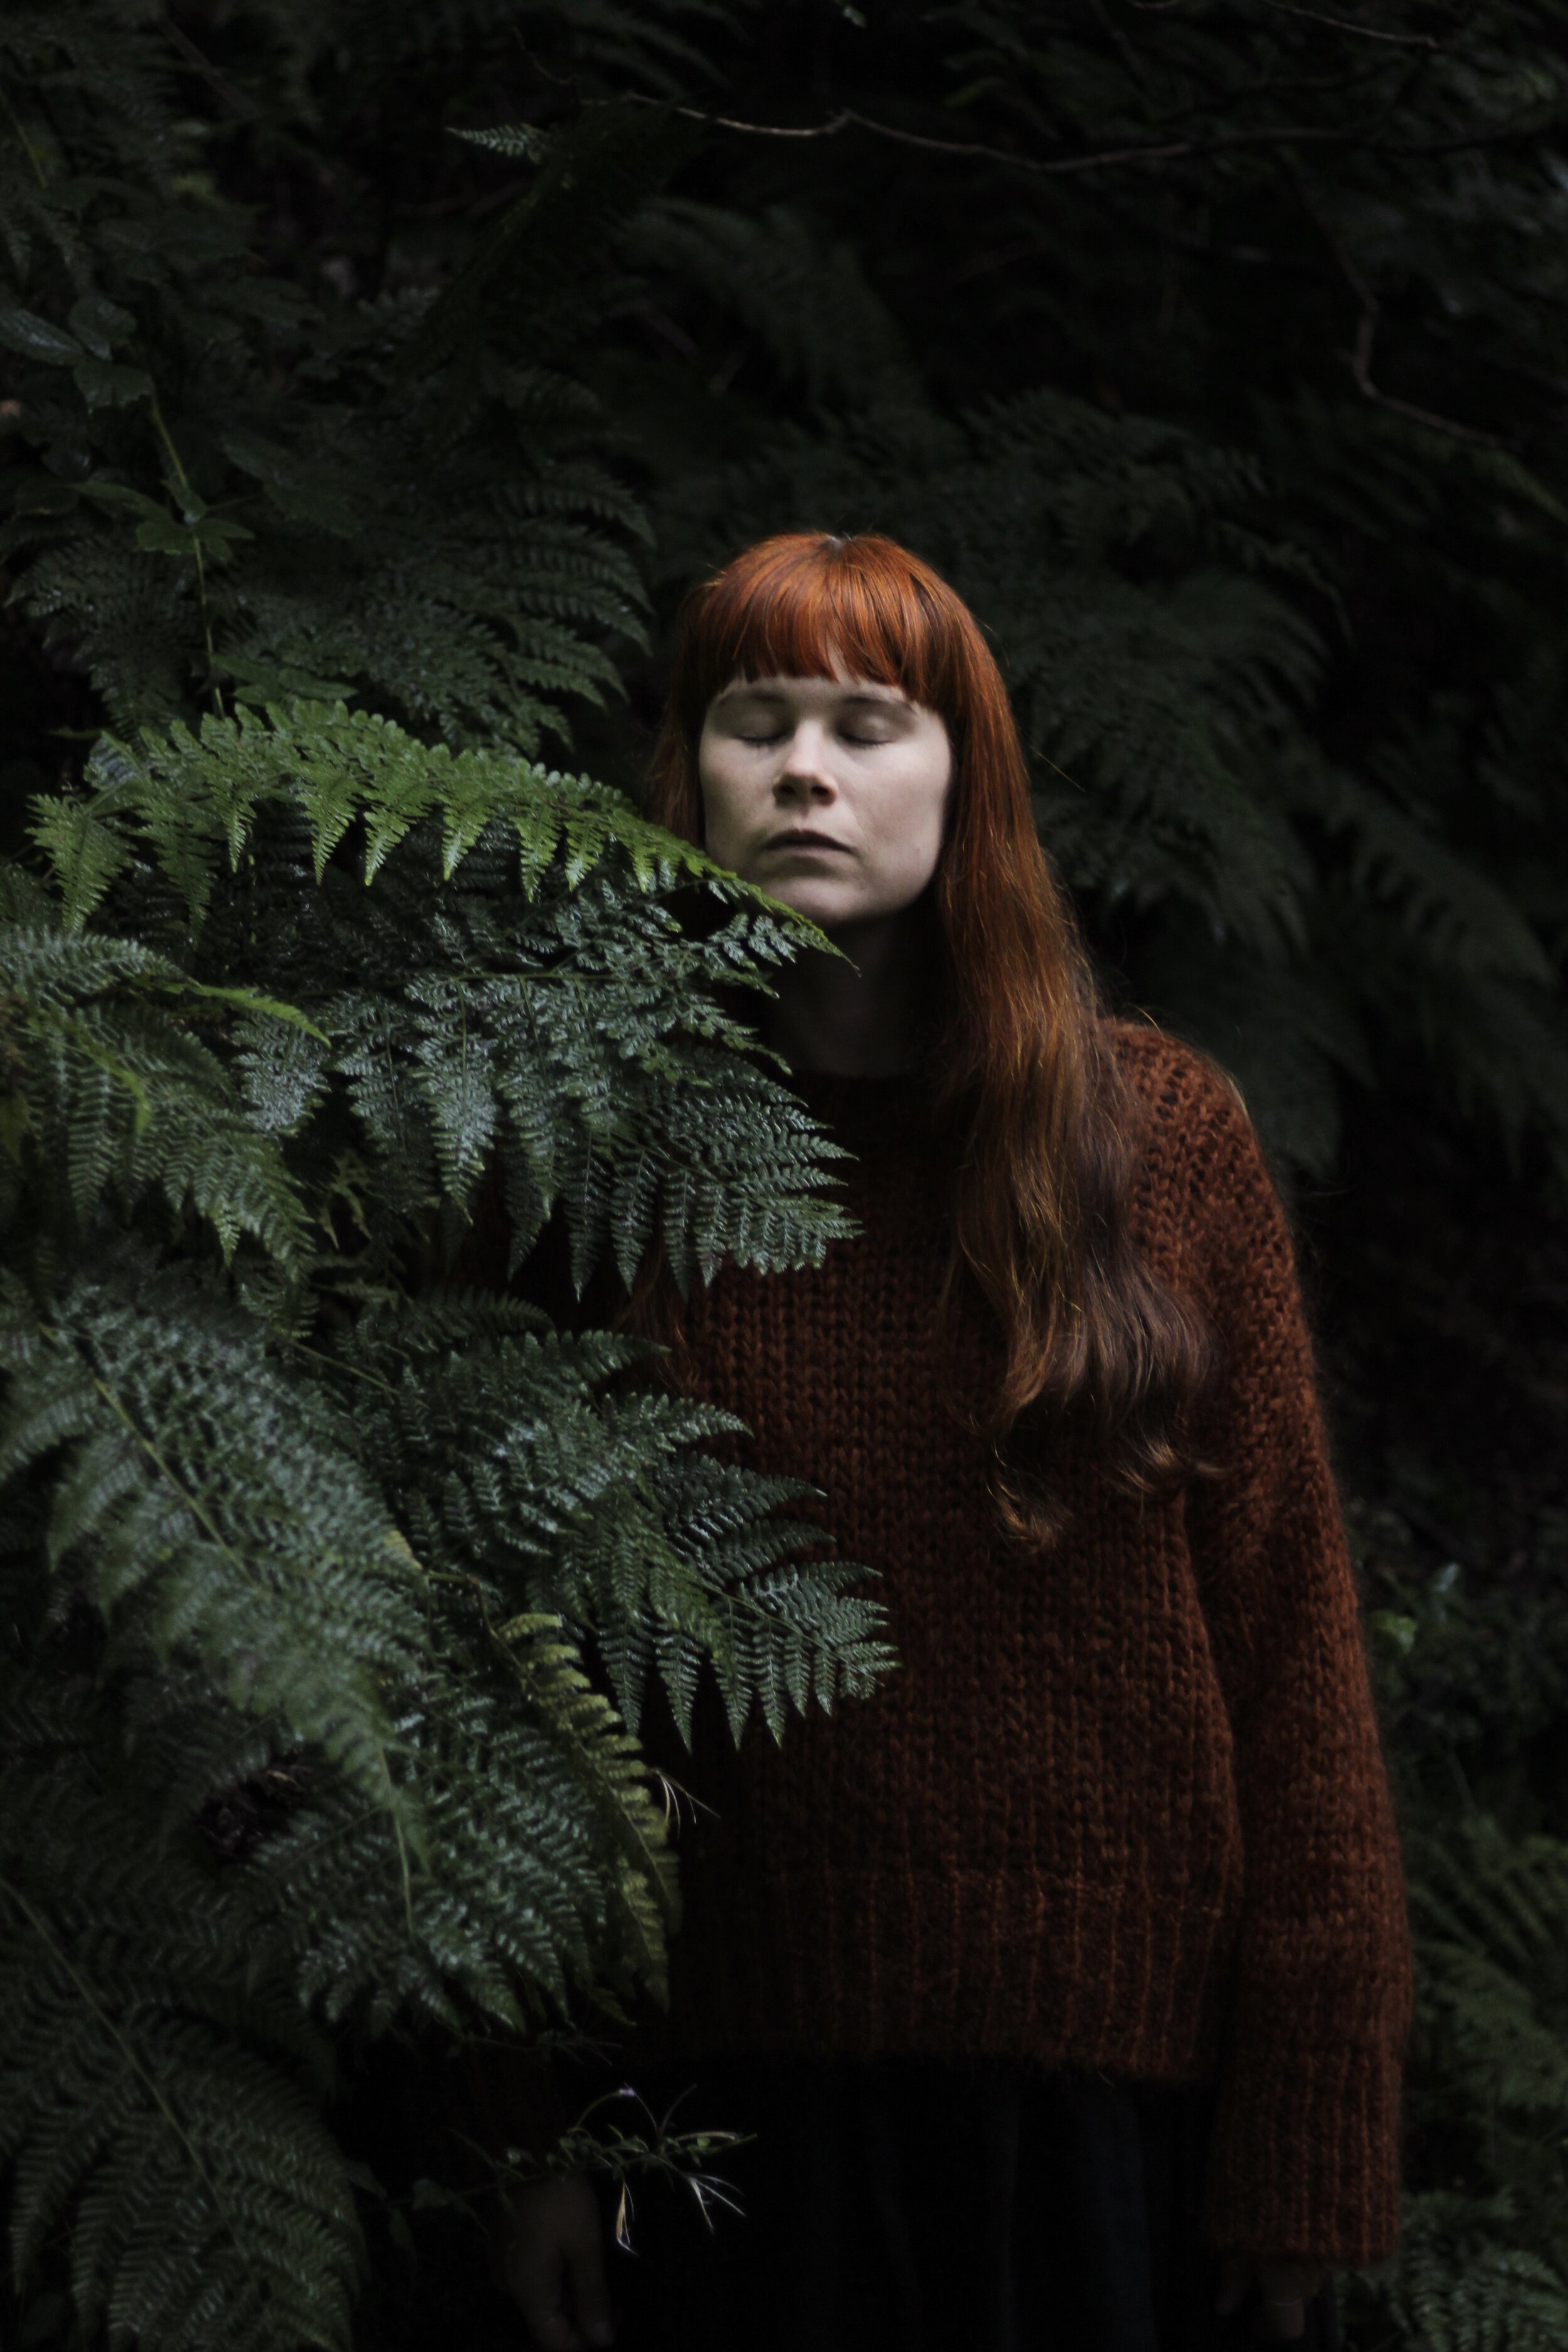 Girl and Ferns | Field +Nest